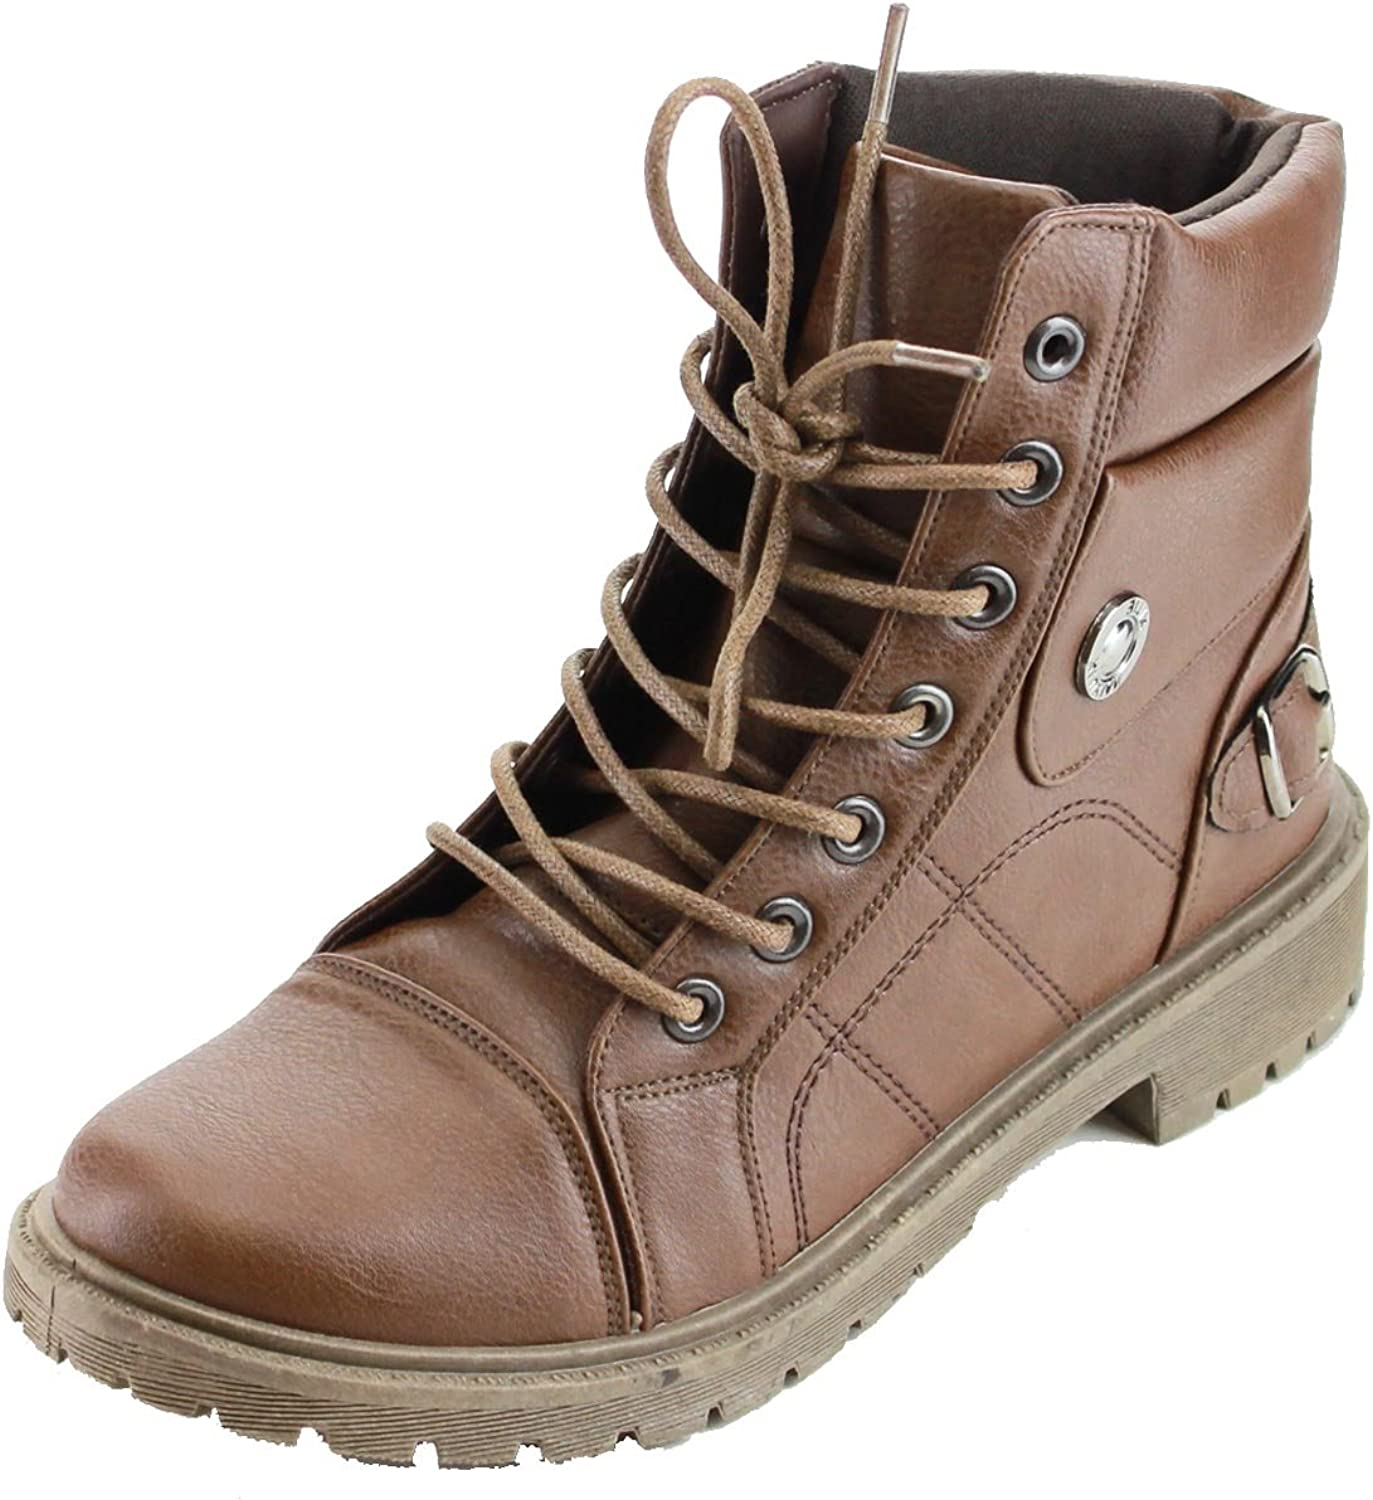 Refresh Footwear Women's Lace Up Rubber Sole Combat Boot